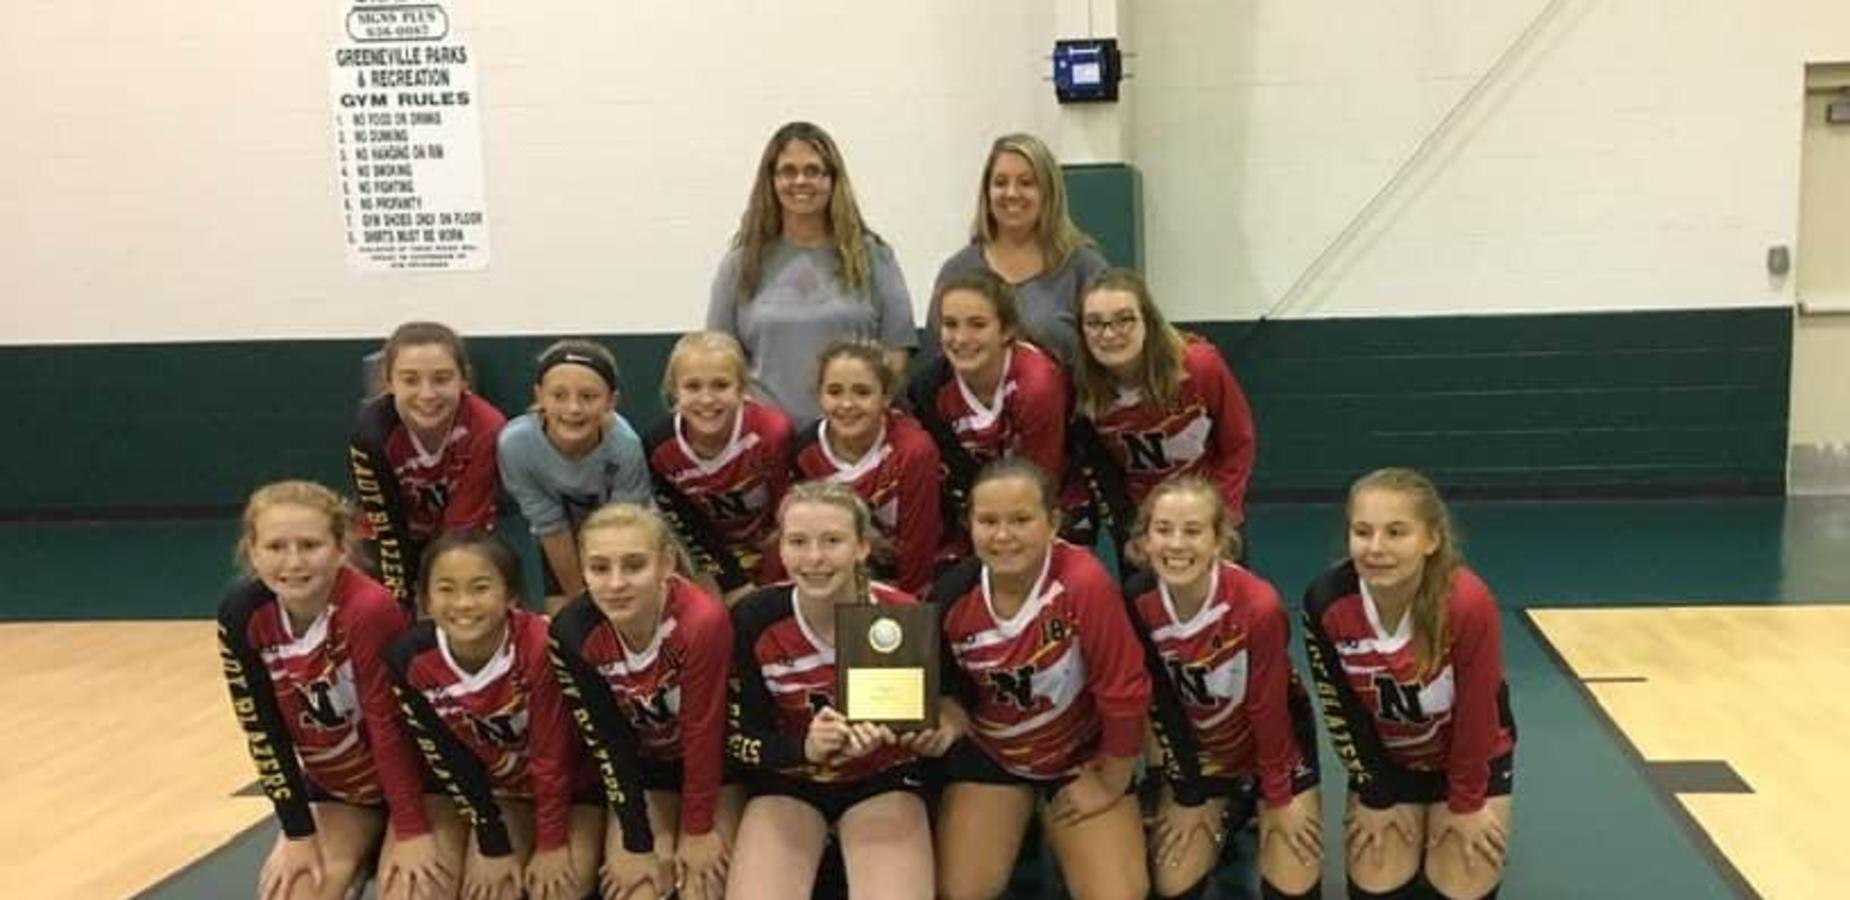 Photo of Nolachuckey girls volleyball team.  Congratulations Lady Blazers! Second in Sports on the Court Tournament.